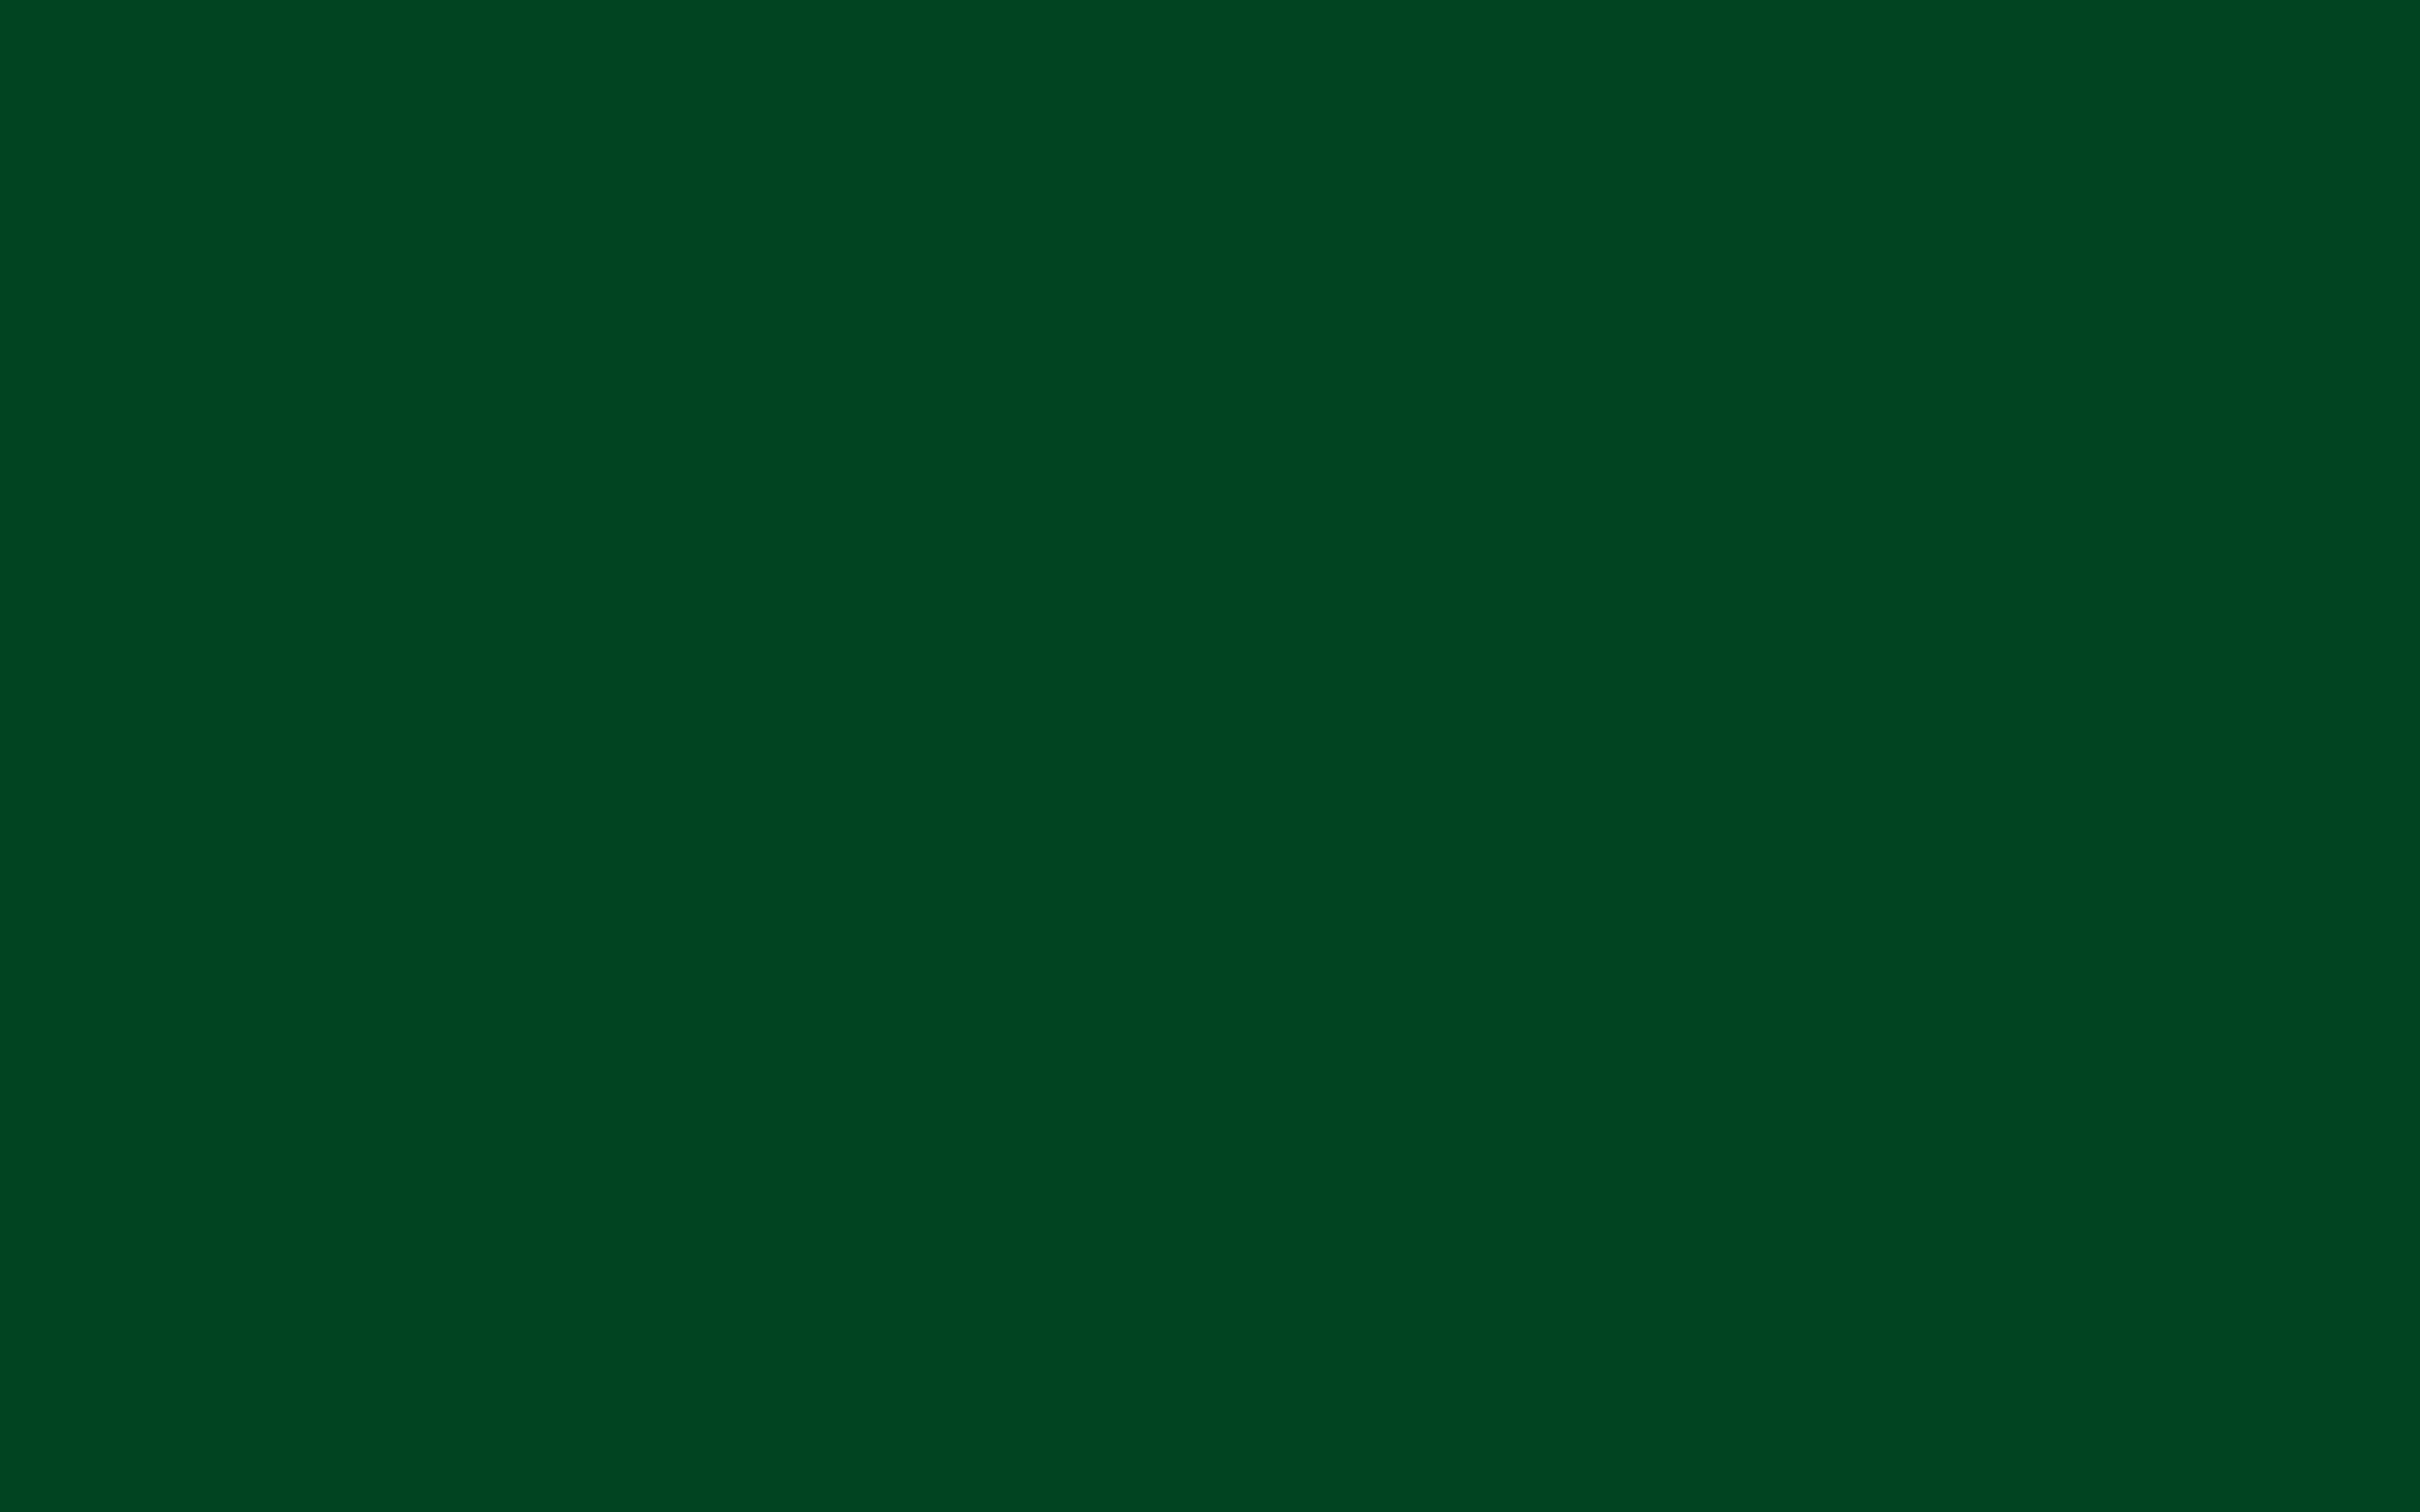 2560x1600 resolution Forest Green Traditional solid color background 2560x1600